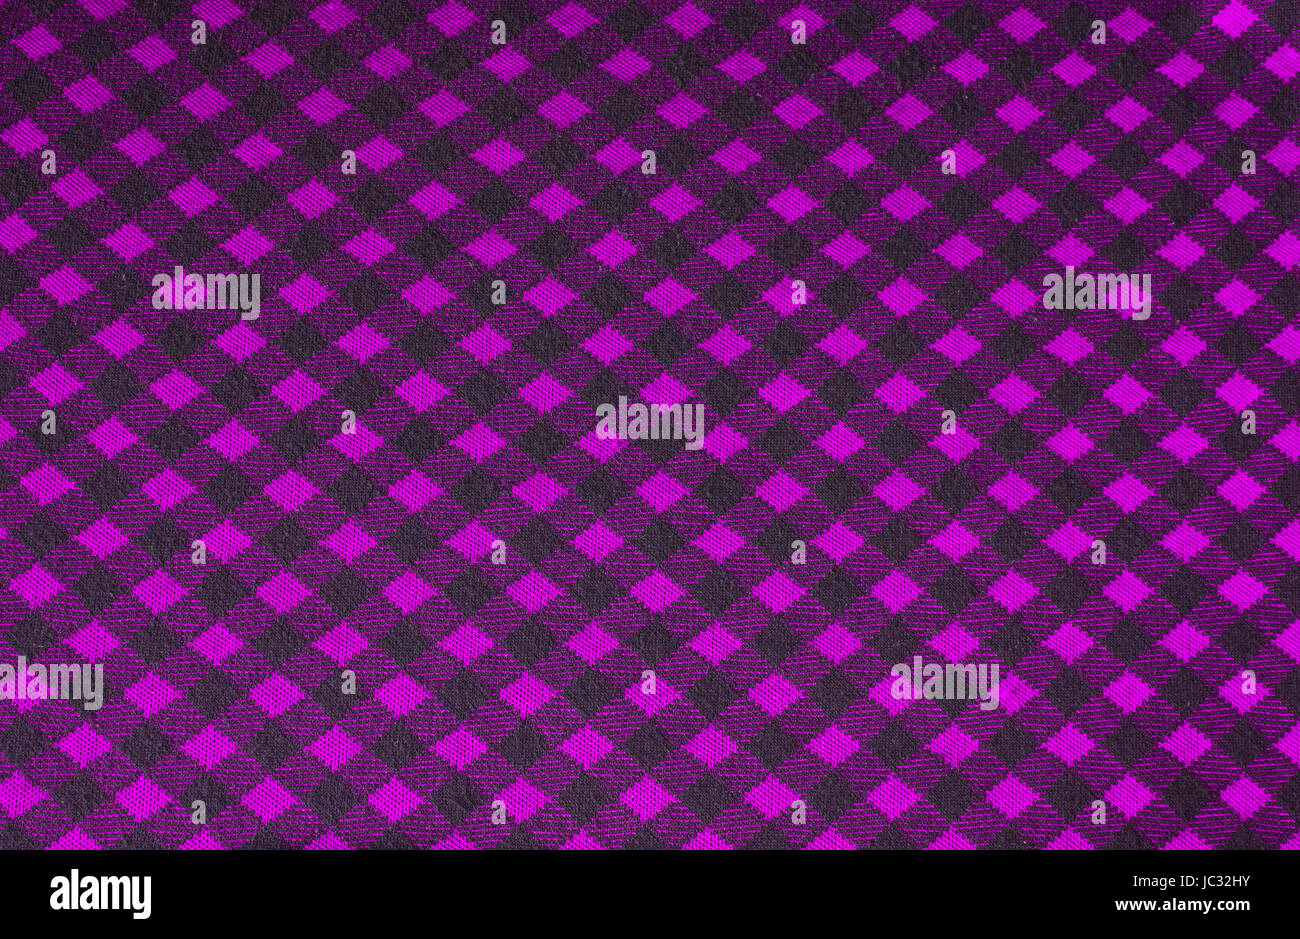 Knitted (tricot) background, emo style, with black and pink rhombuses - Stock Image